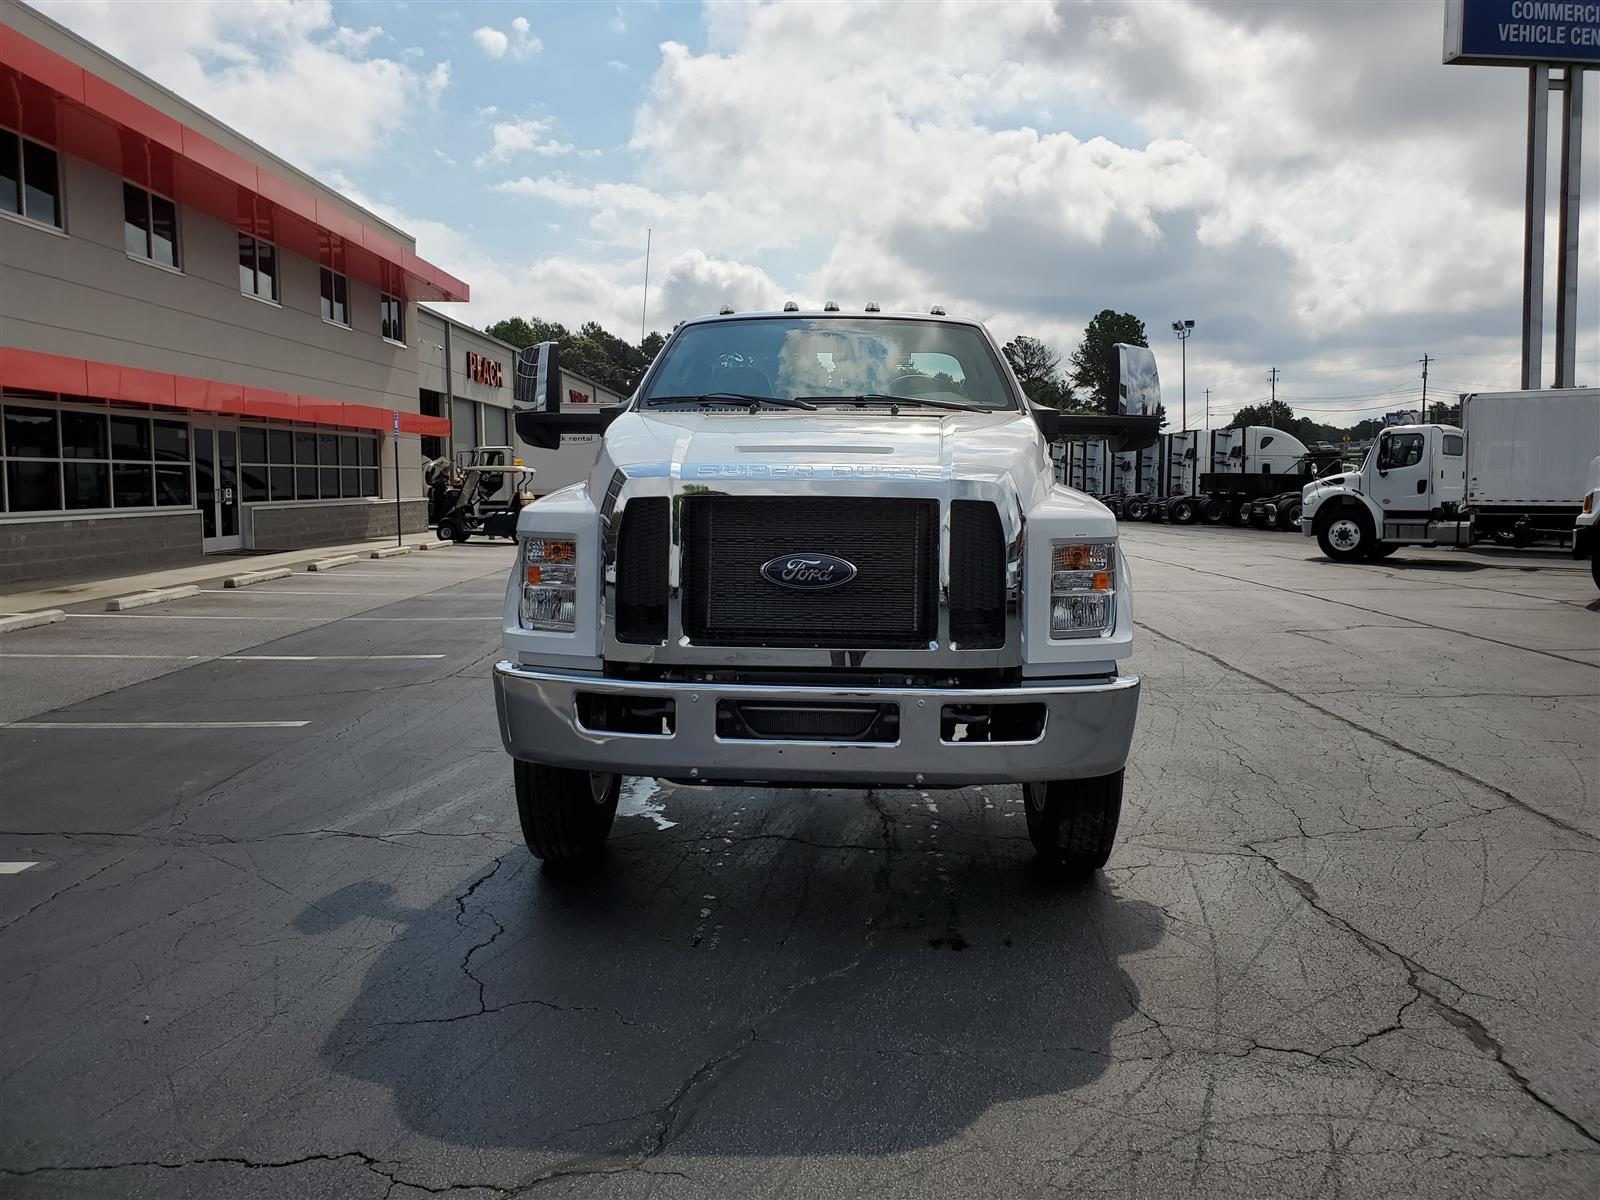 2021 Ford F-650 Regular Cab DRW 4x2, Cab Chassis #MDF02556 - photo 4